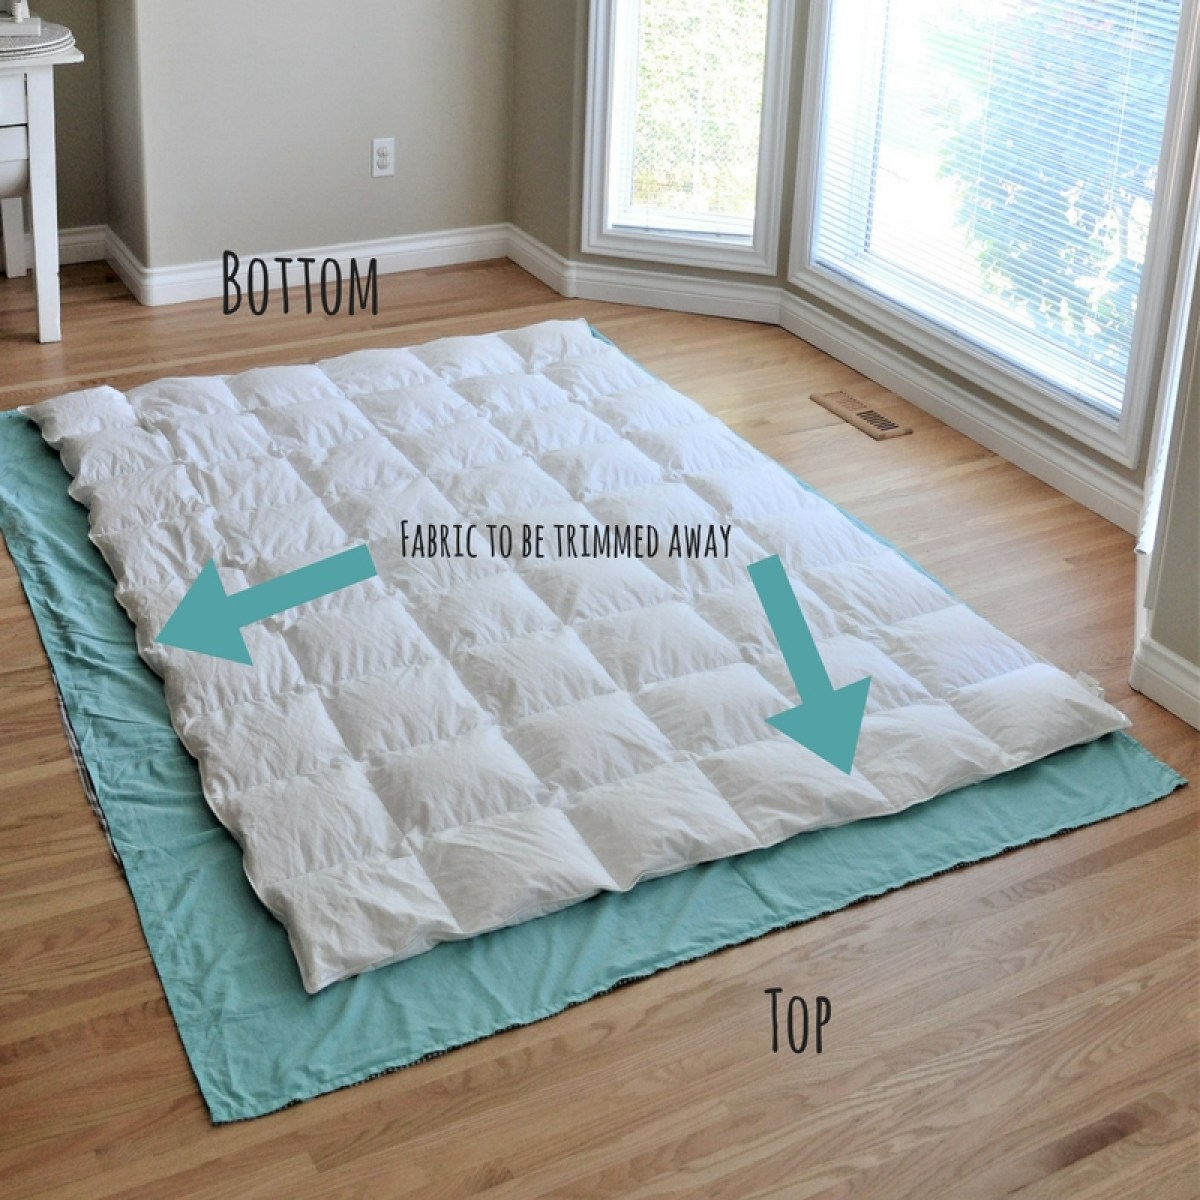 Diy Duvet Cover From Flat Sheets Tutorial Making